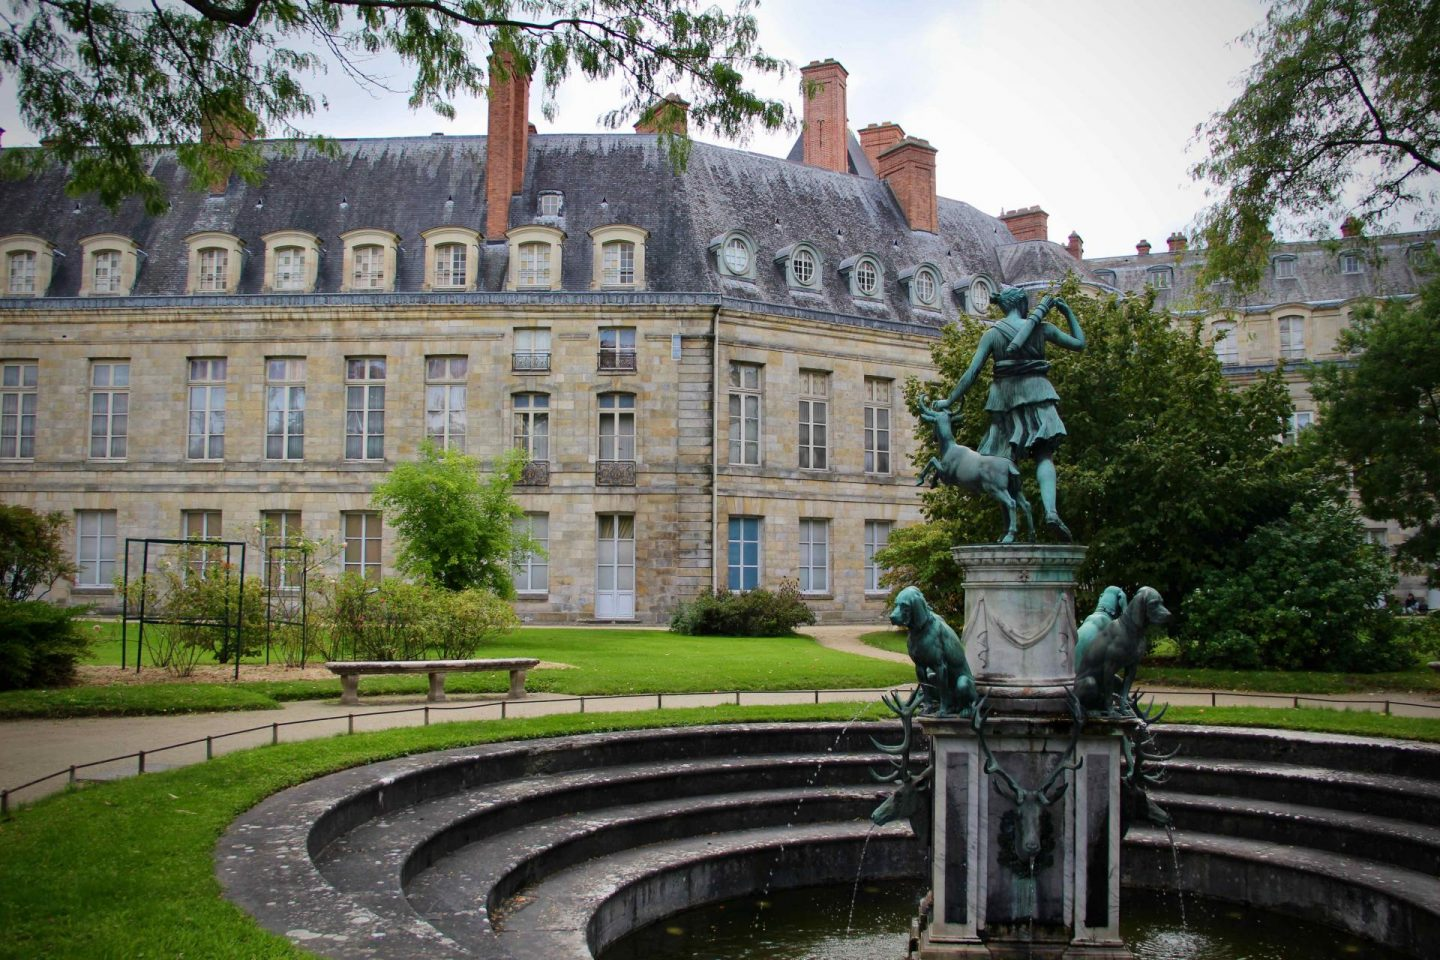 Fontainebleau Chateau Gardens | Fontainebleau Travel Guide | The Spectacular Adventurer